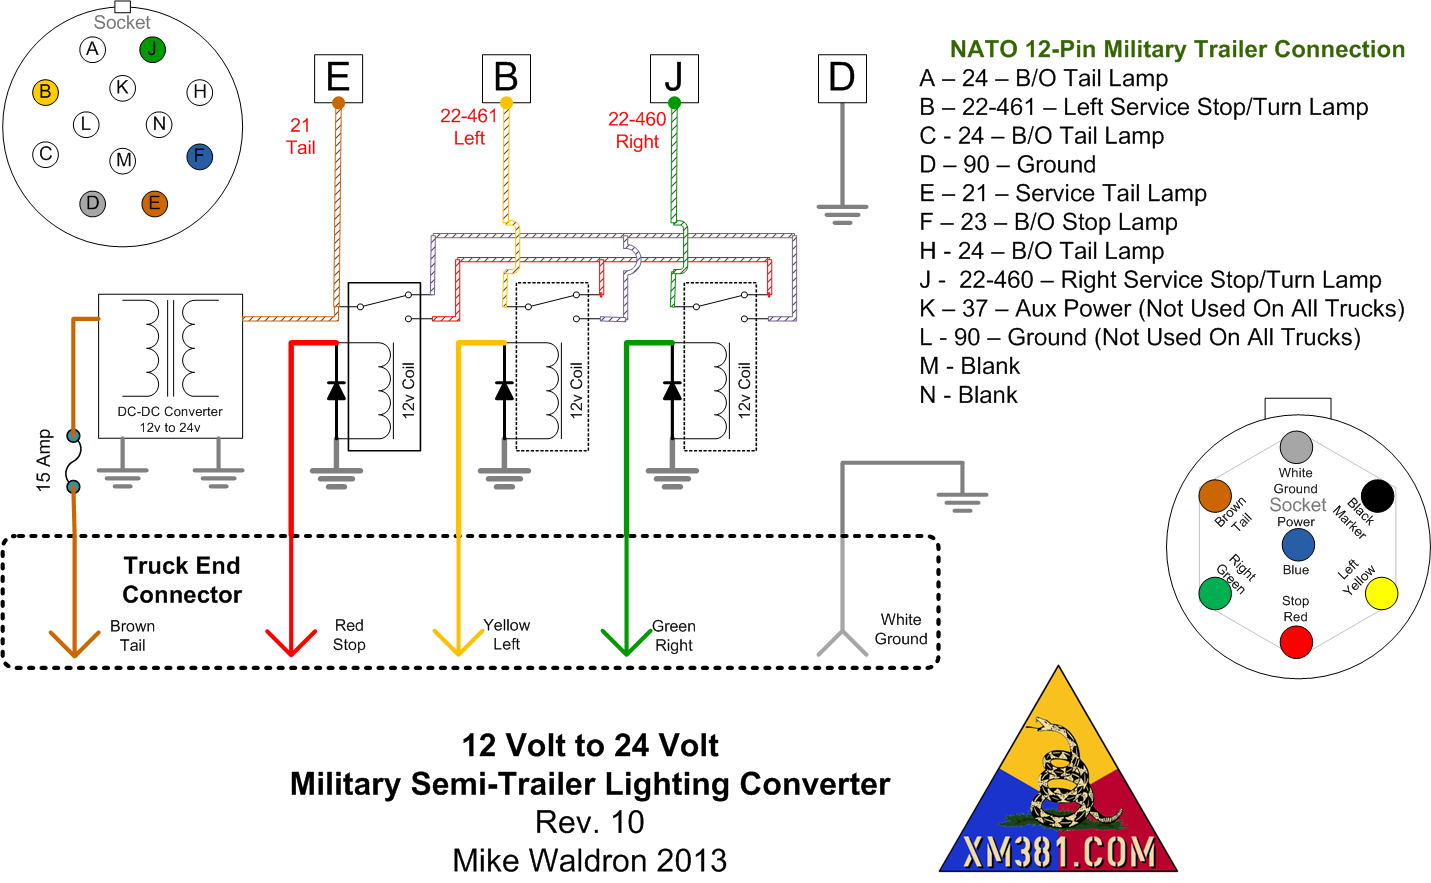 military trailer's nato socket